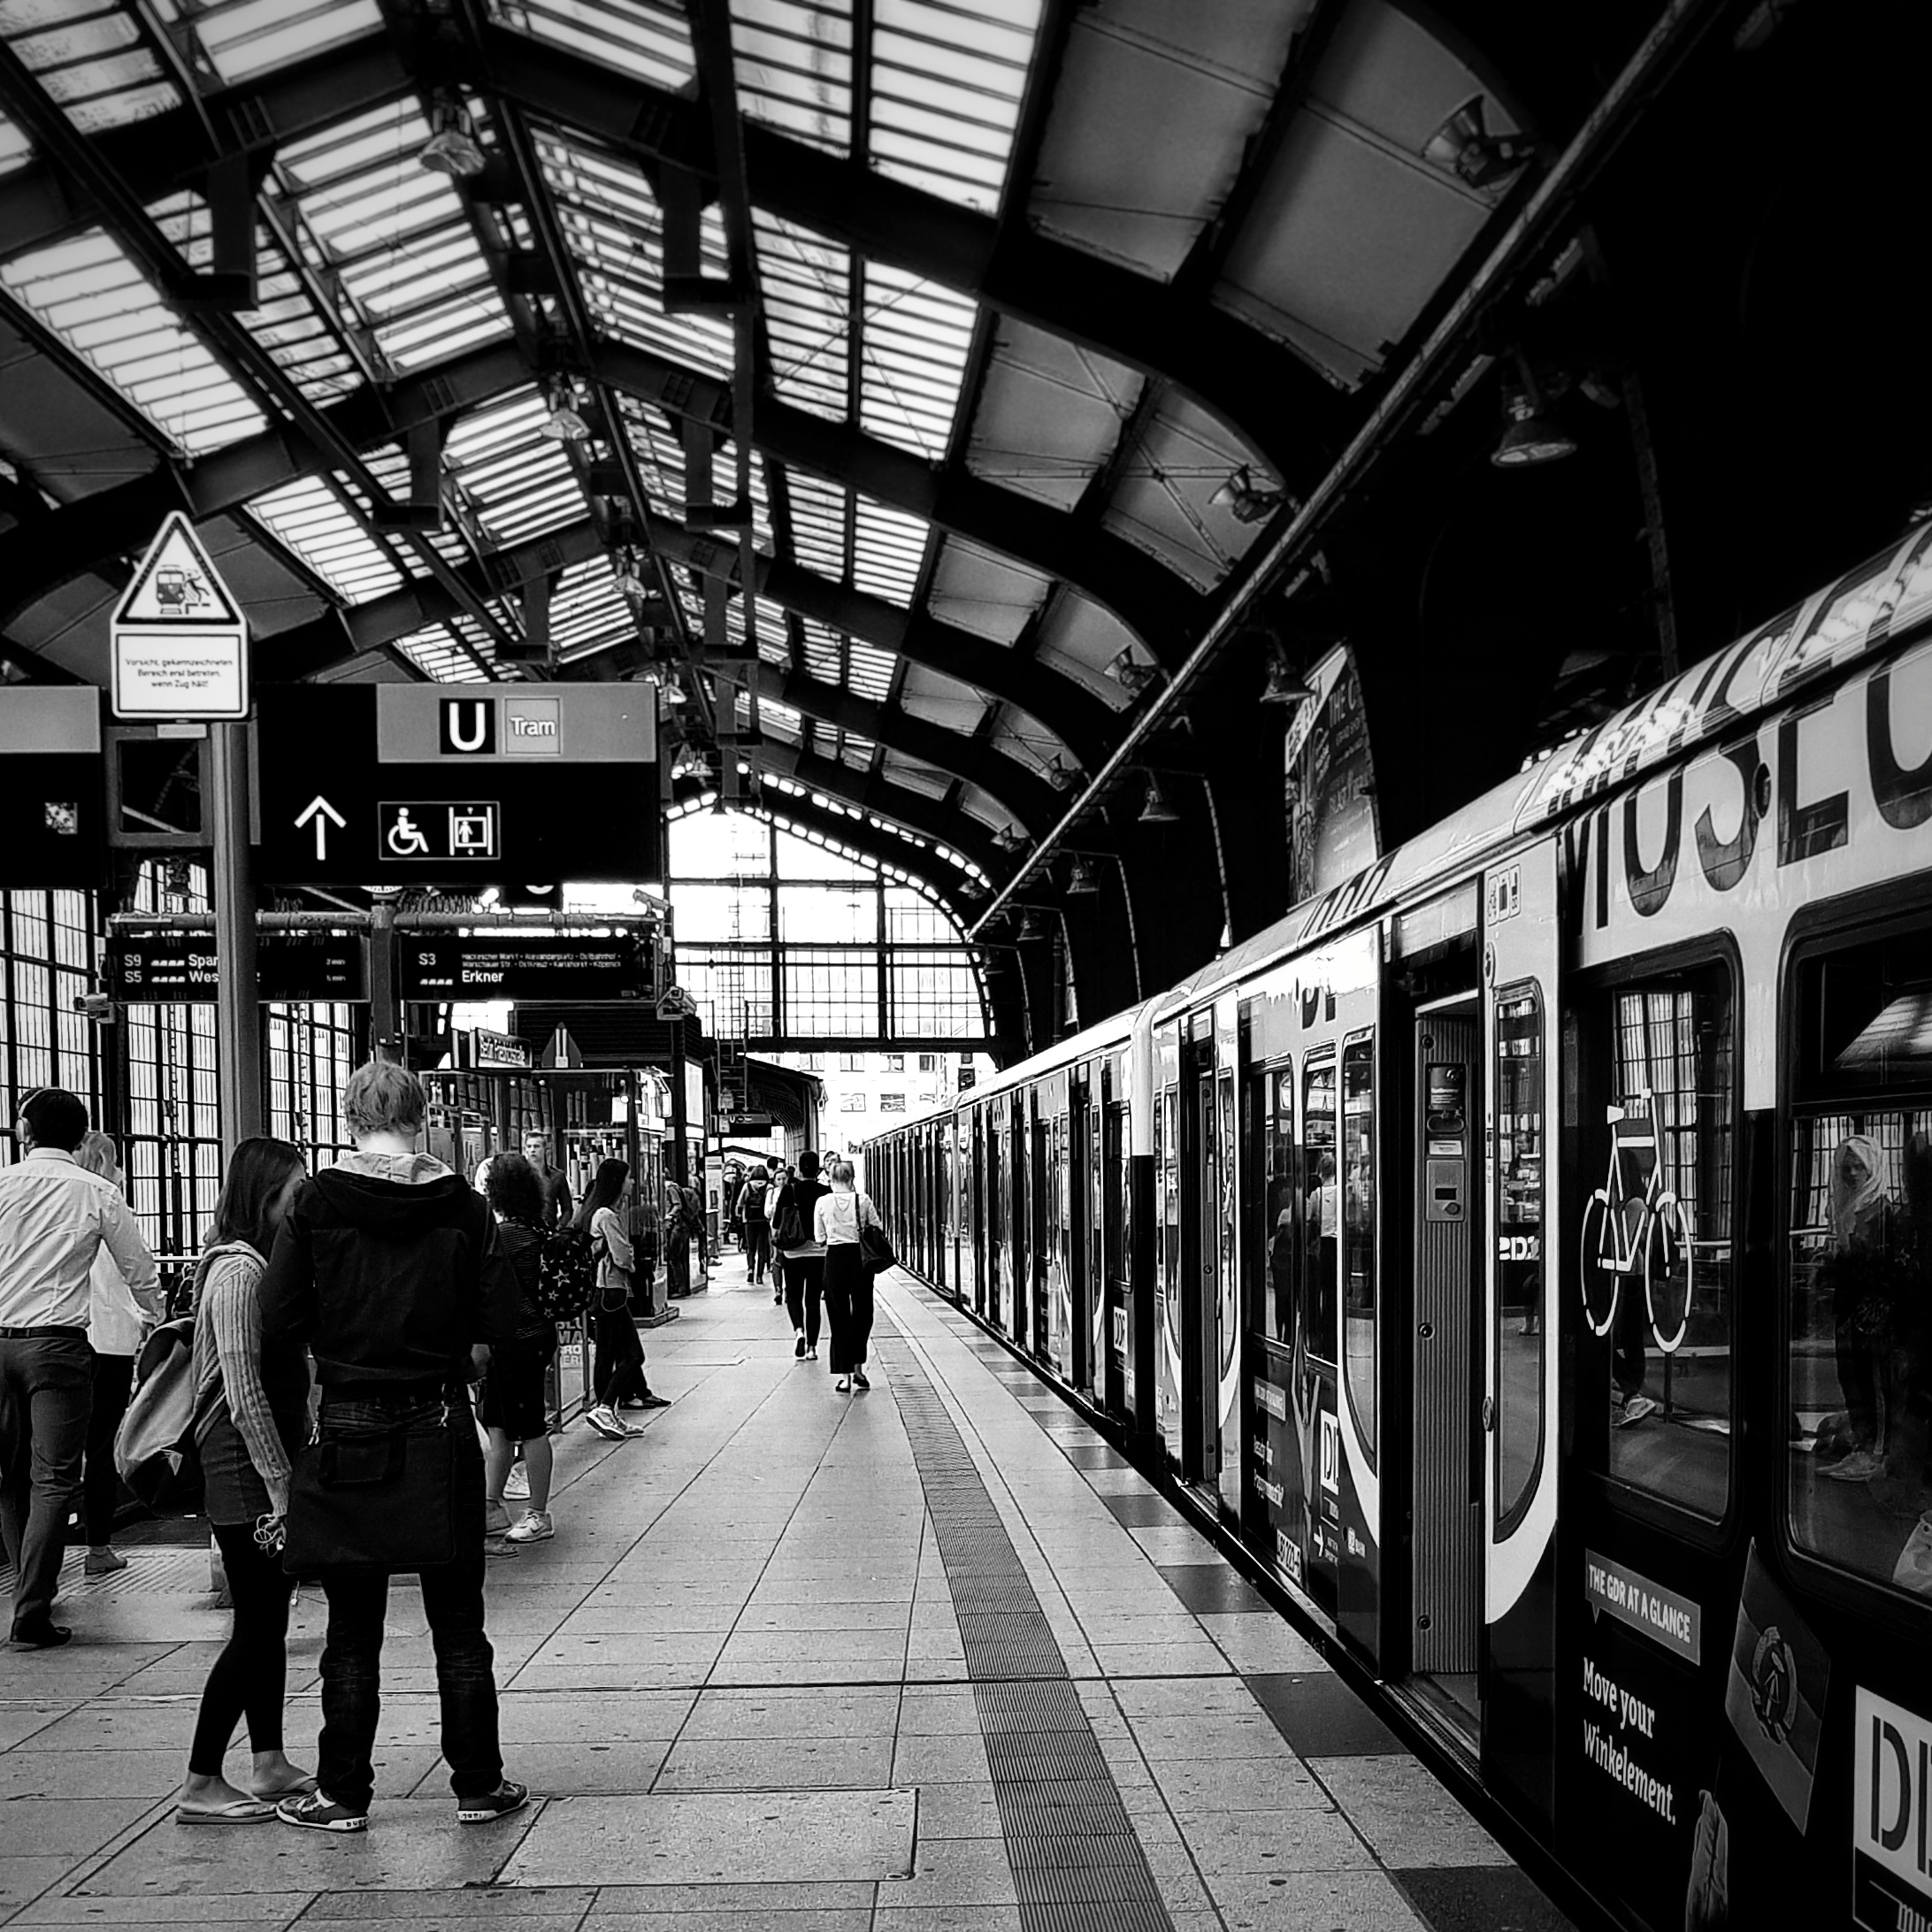 Day 183 - July 02: Commuters on the platform